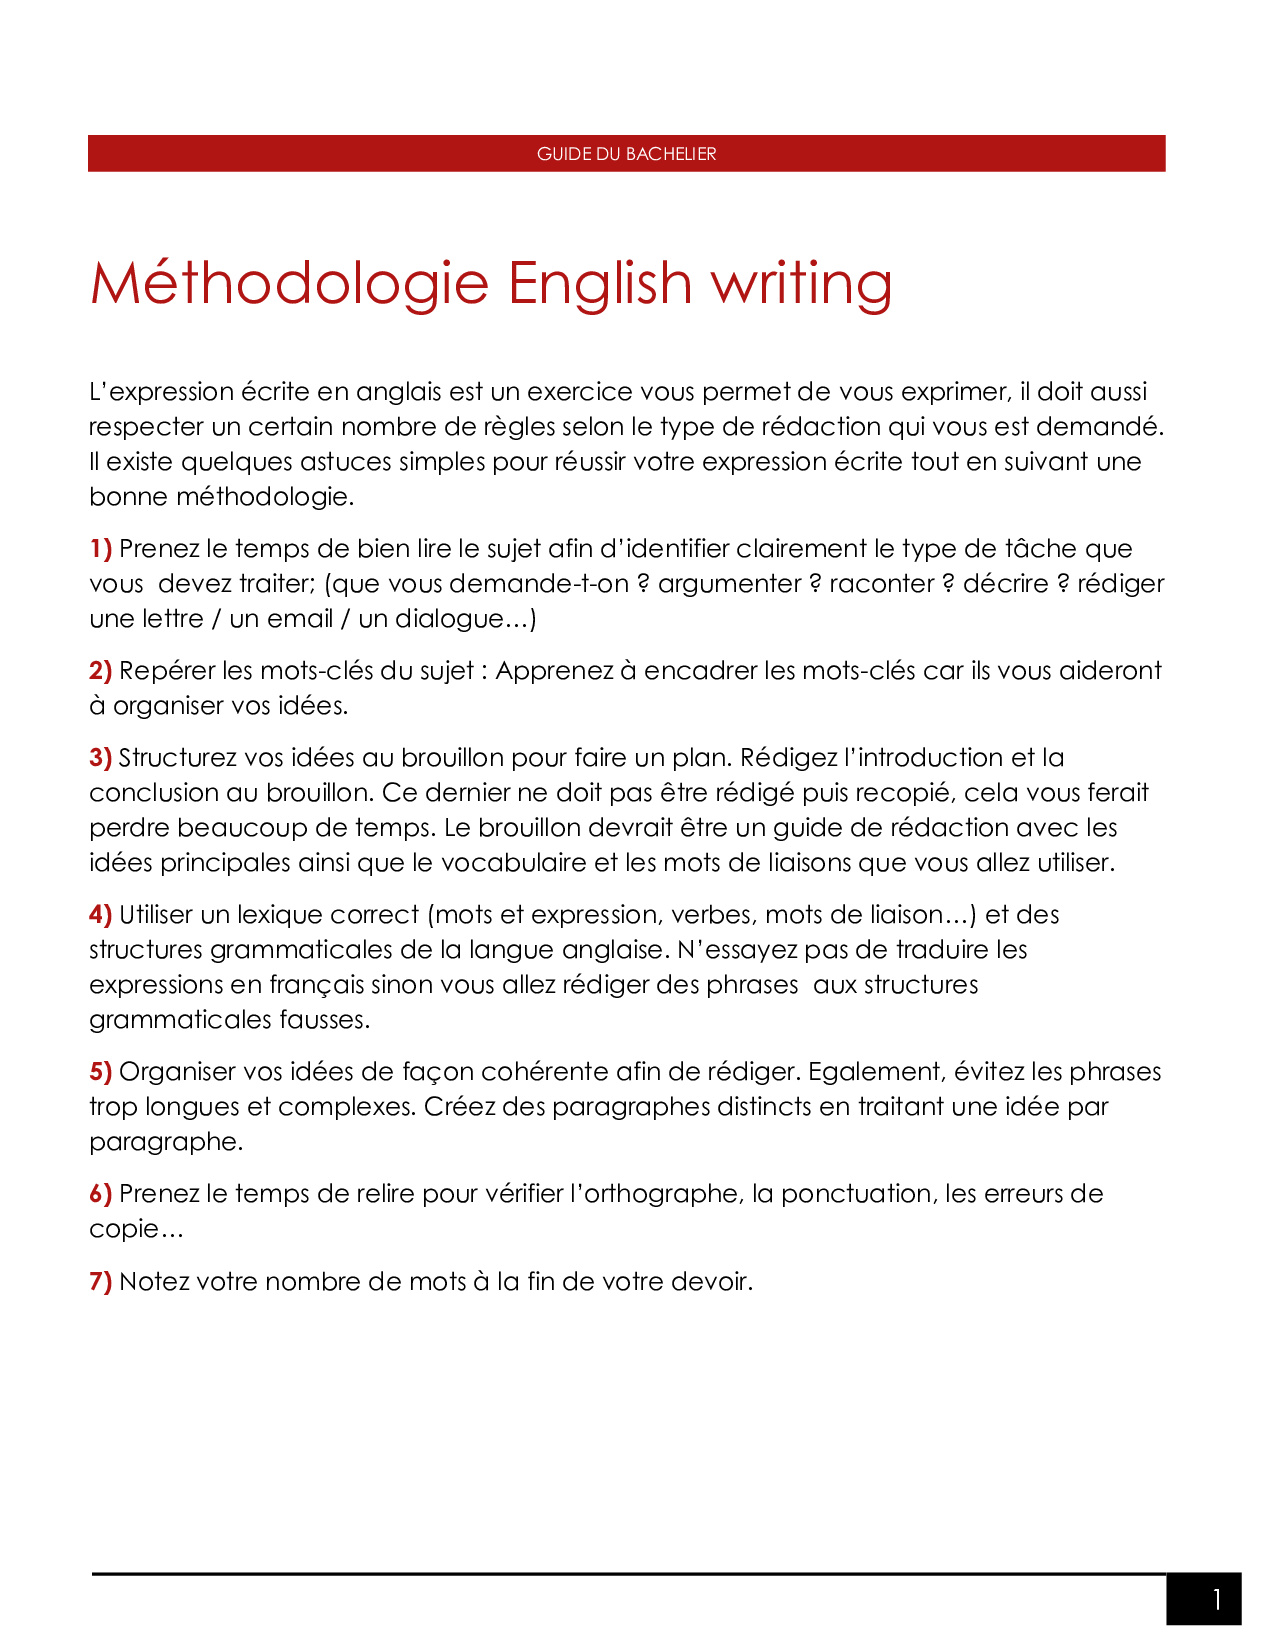 Help with english writing unit 2